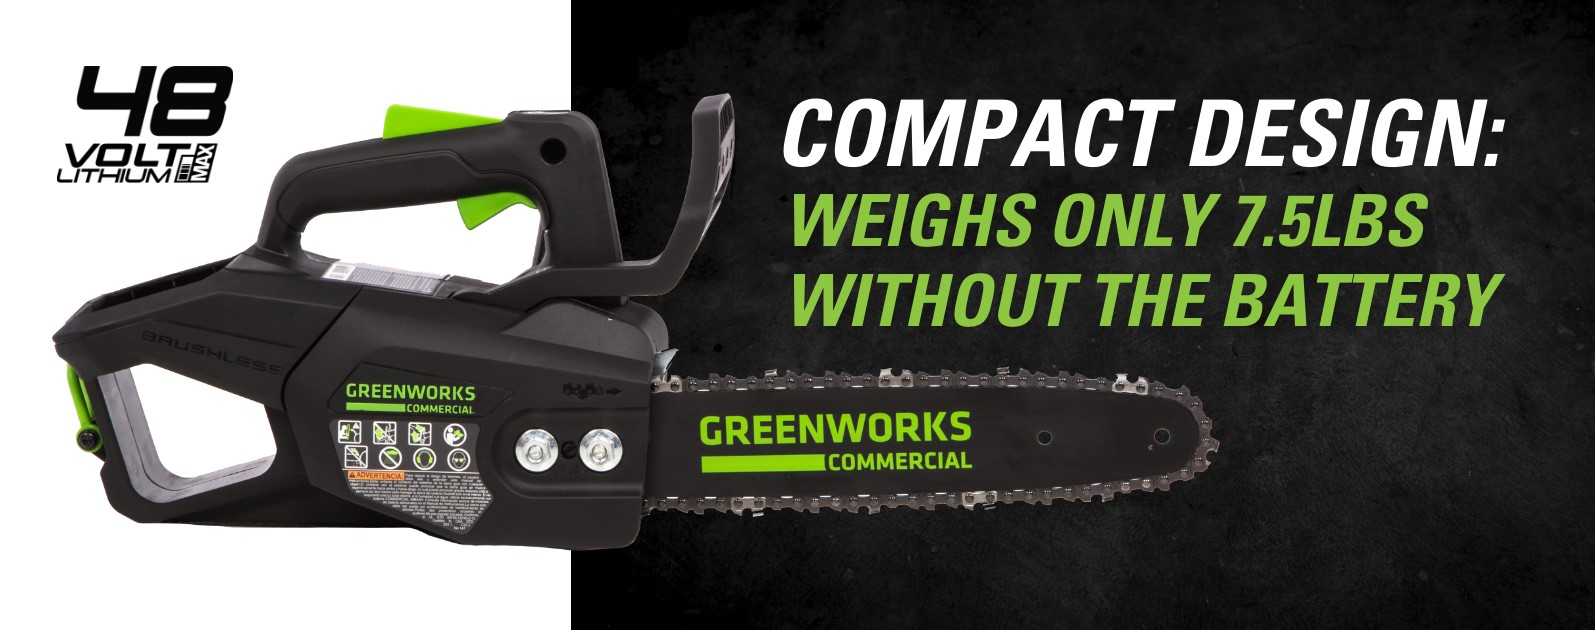 48TH12 48V 12-Inch Top Handle Chainsaw | Greenworks Commercial